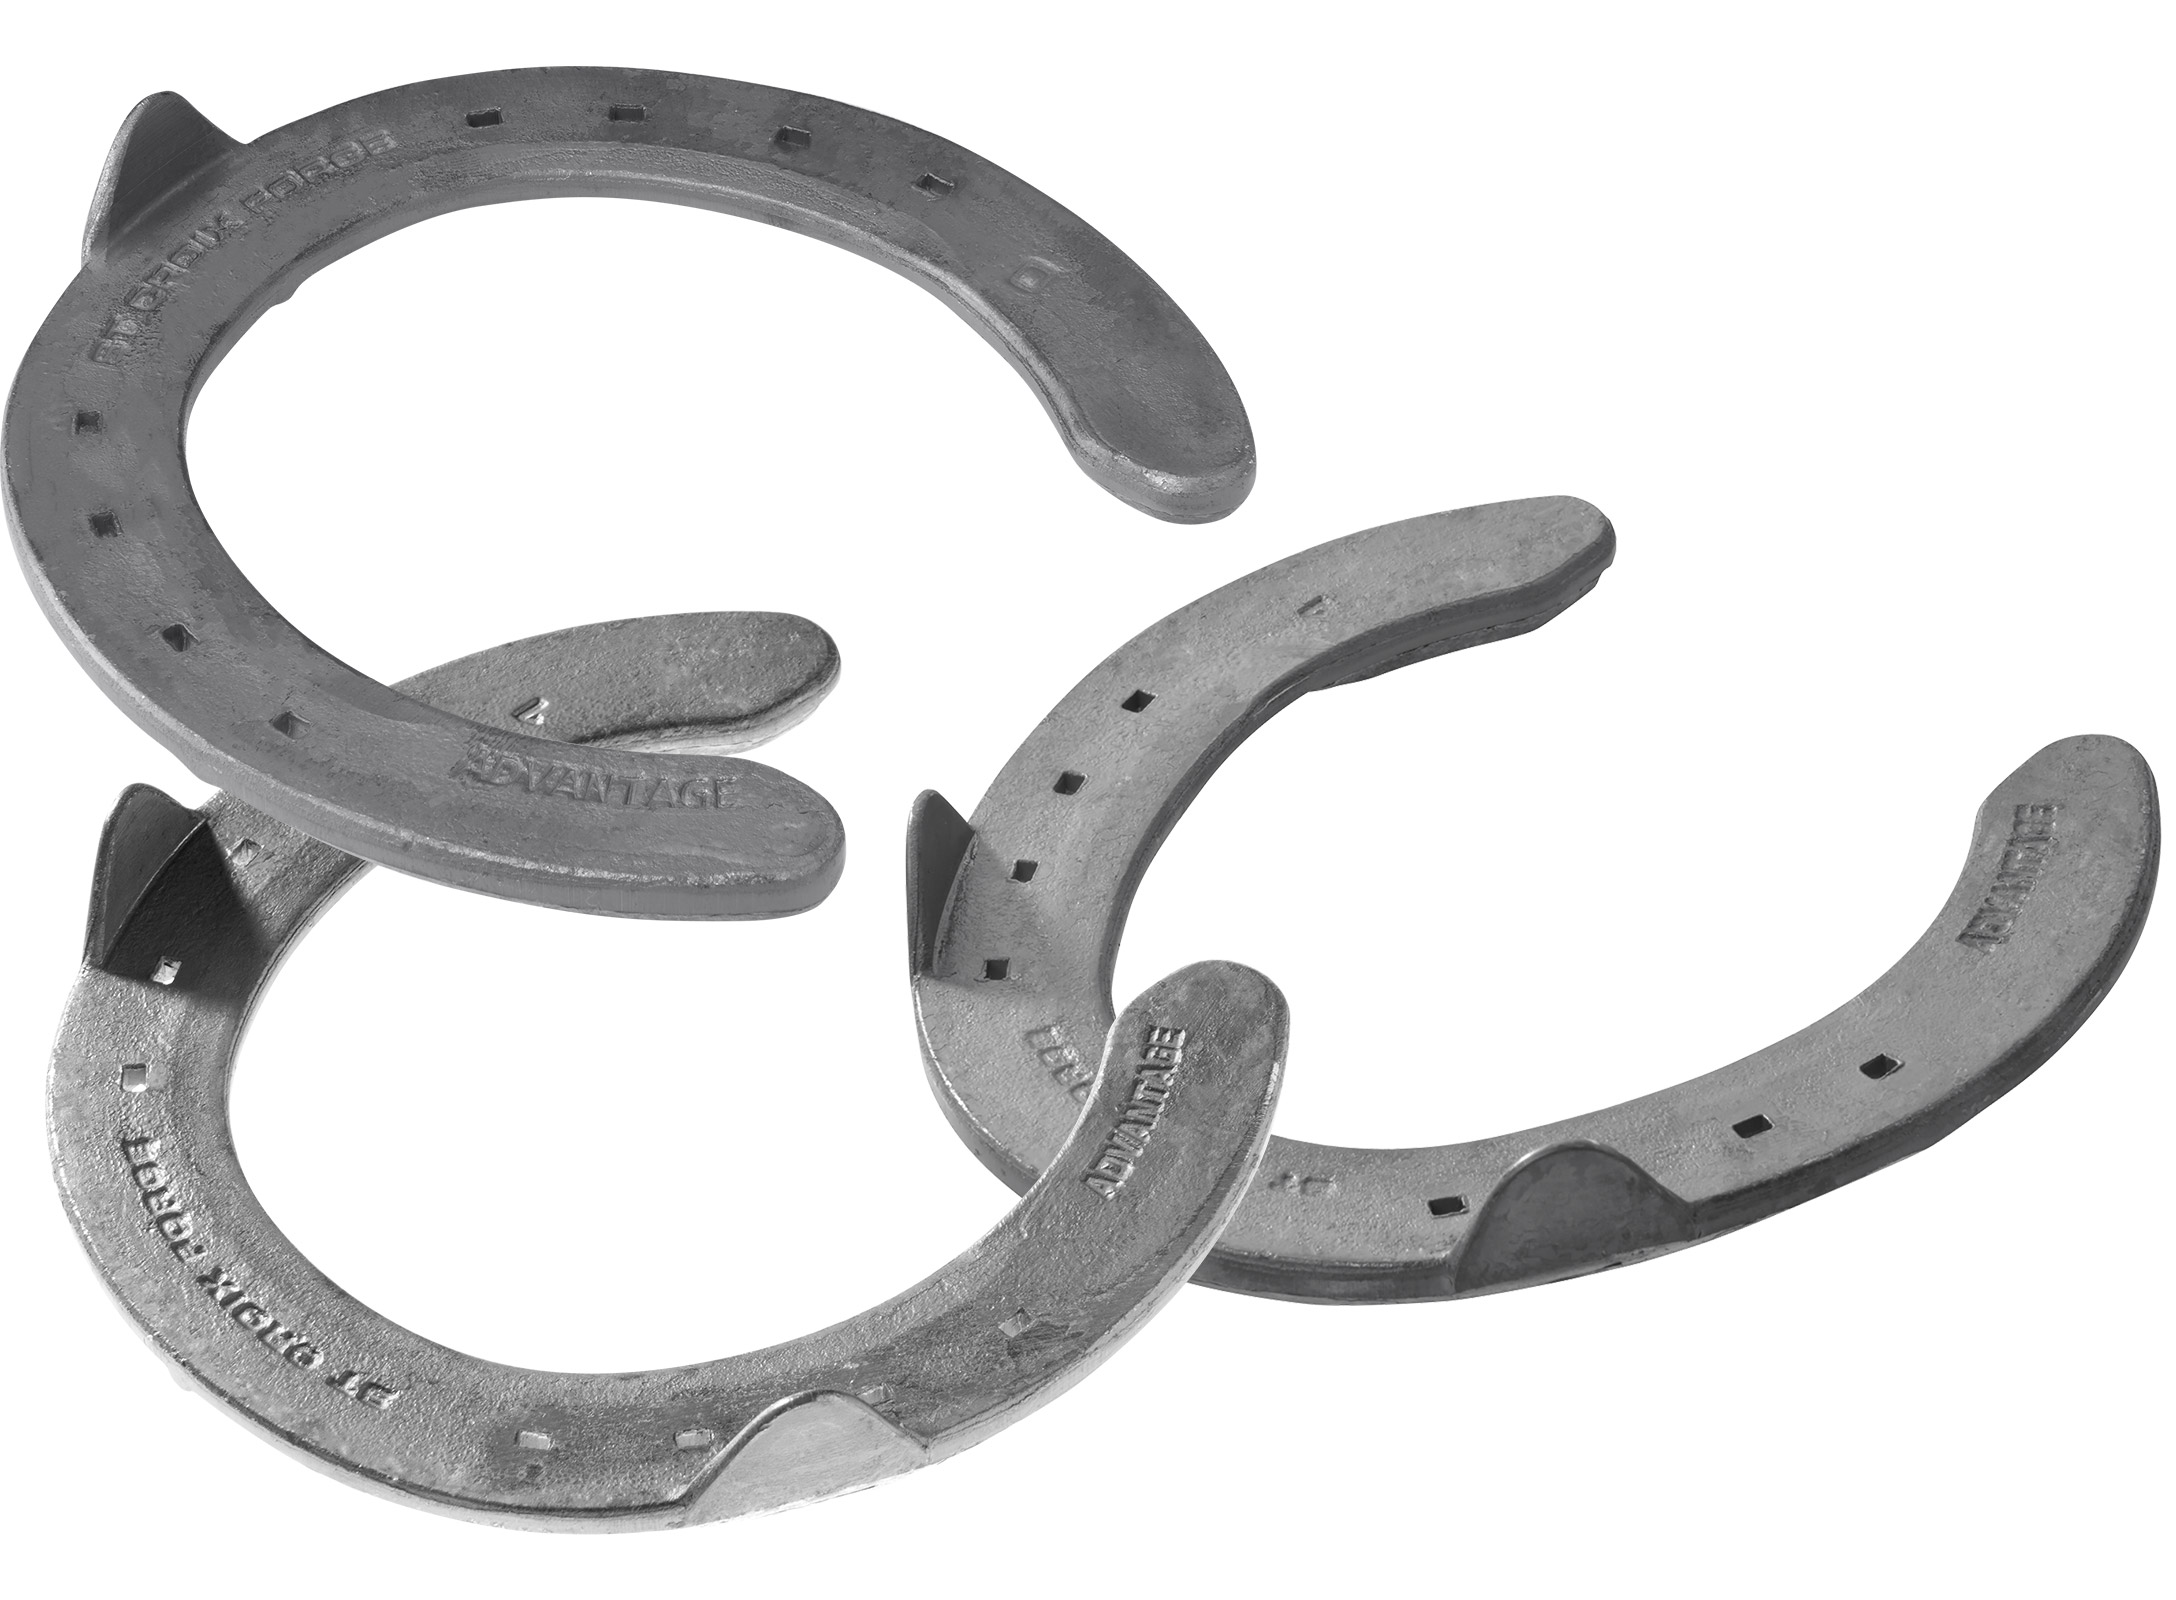 St. Croix Advantage Steel horseshoes, front toe clip and  side clips, hind side clips, hoof side view